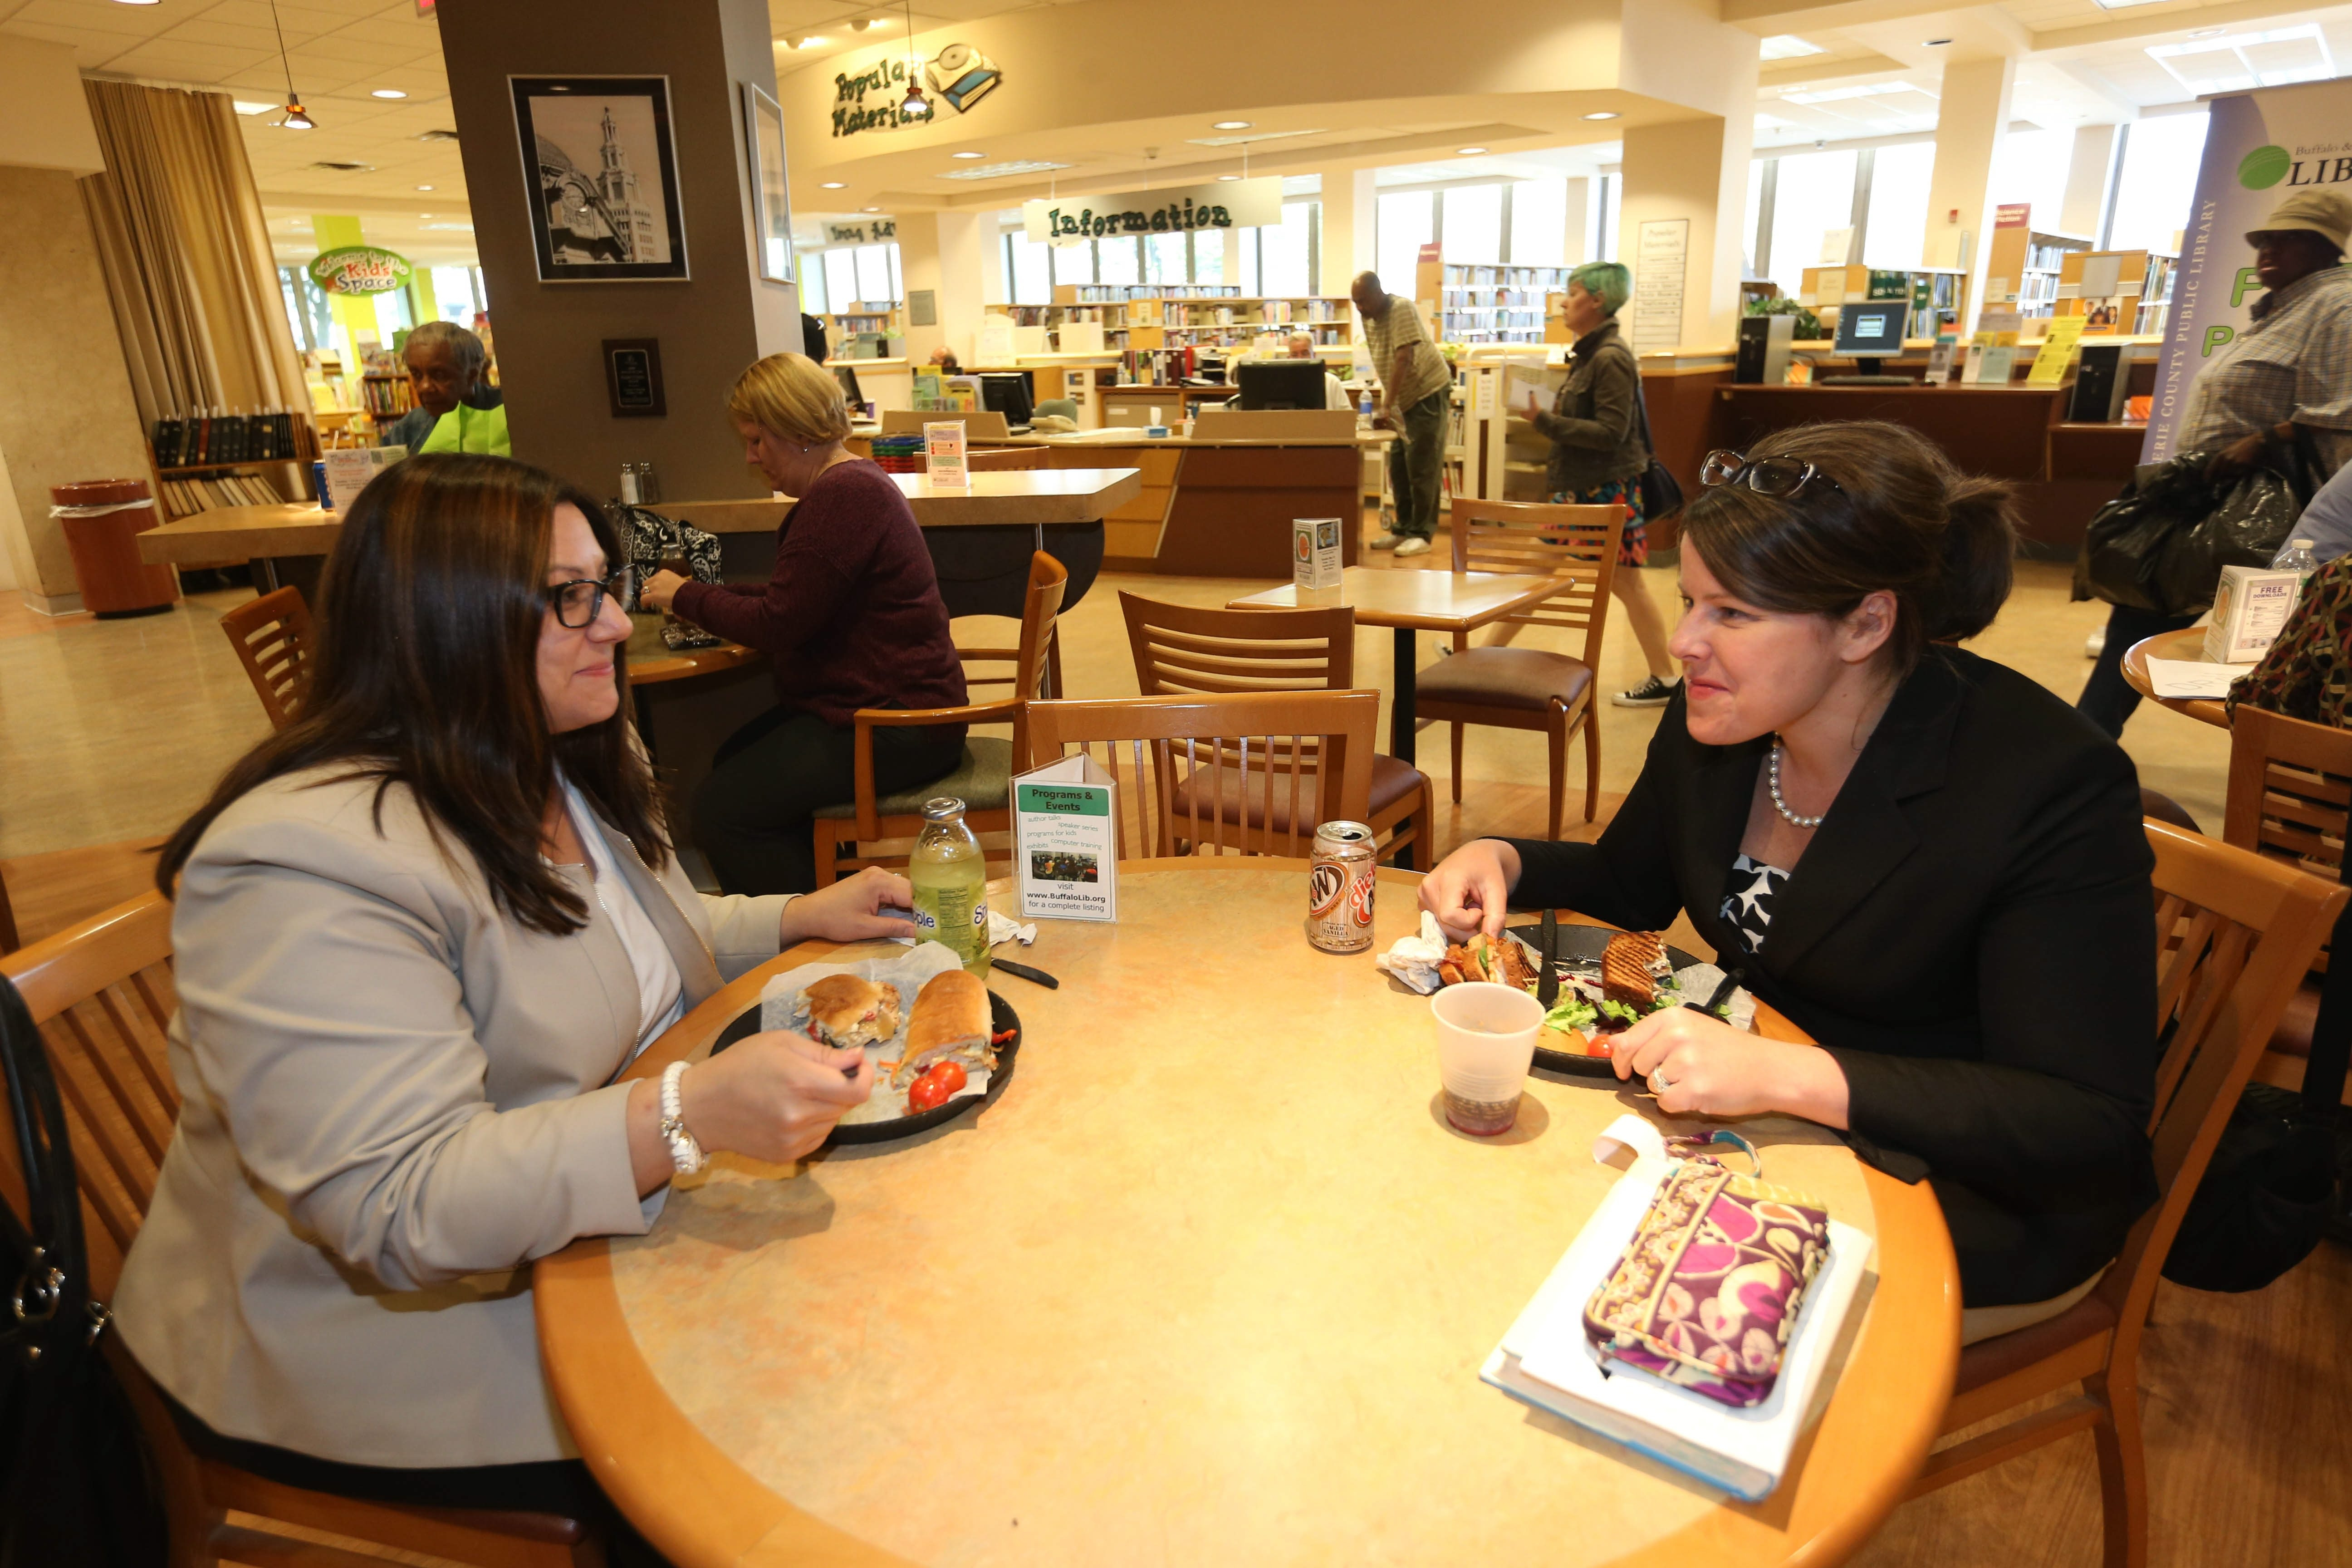 Dana Mis, left, and Heather Becker have lunch at Fables Cafe, a spacious eating area inside the Central Library, Lafayette Square. To see more photos, visit buffalonews.com.